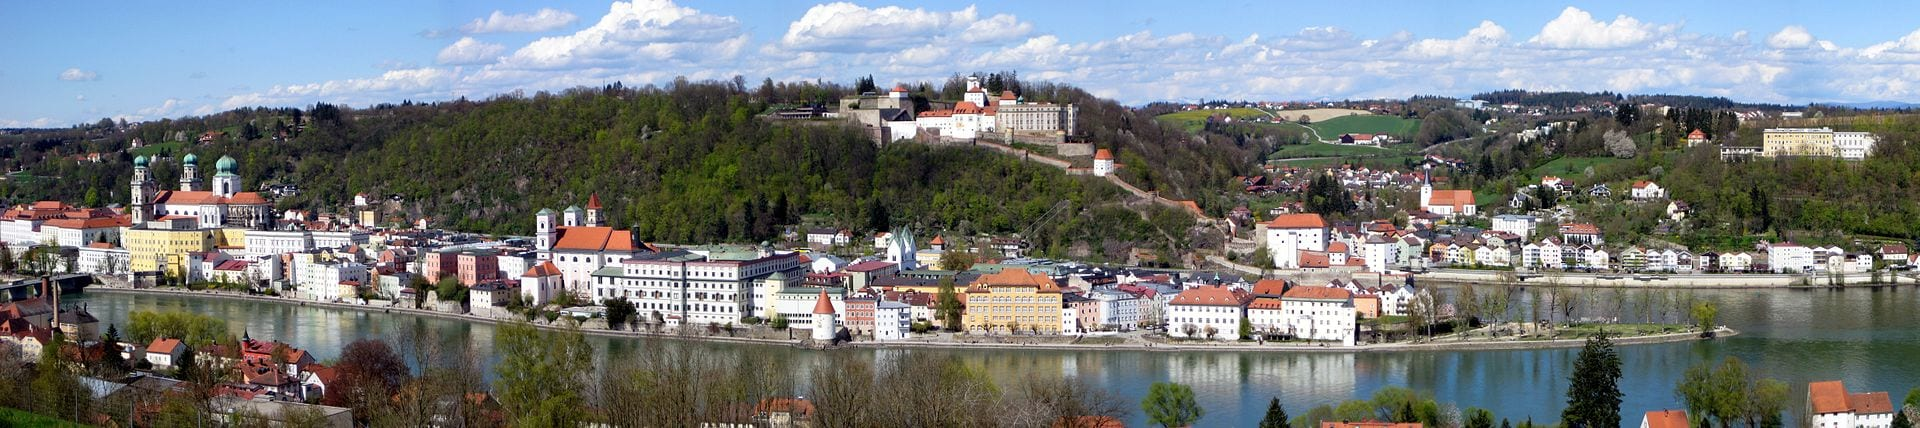 Passau is a popular place to begin cycling the River Danube Cycle Path.